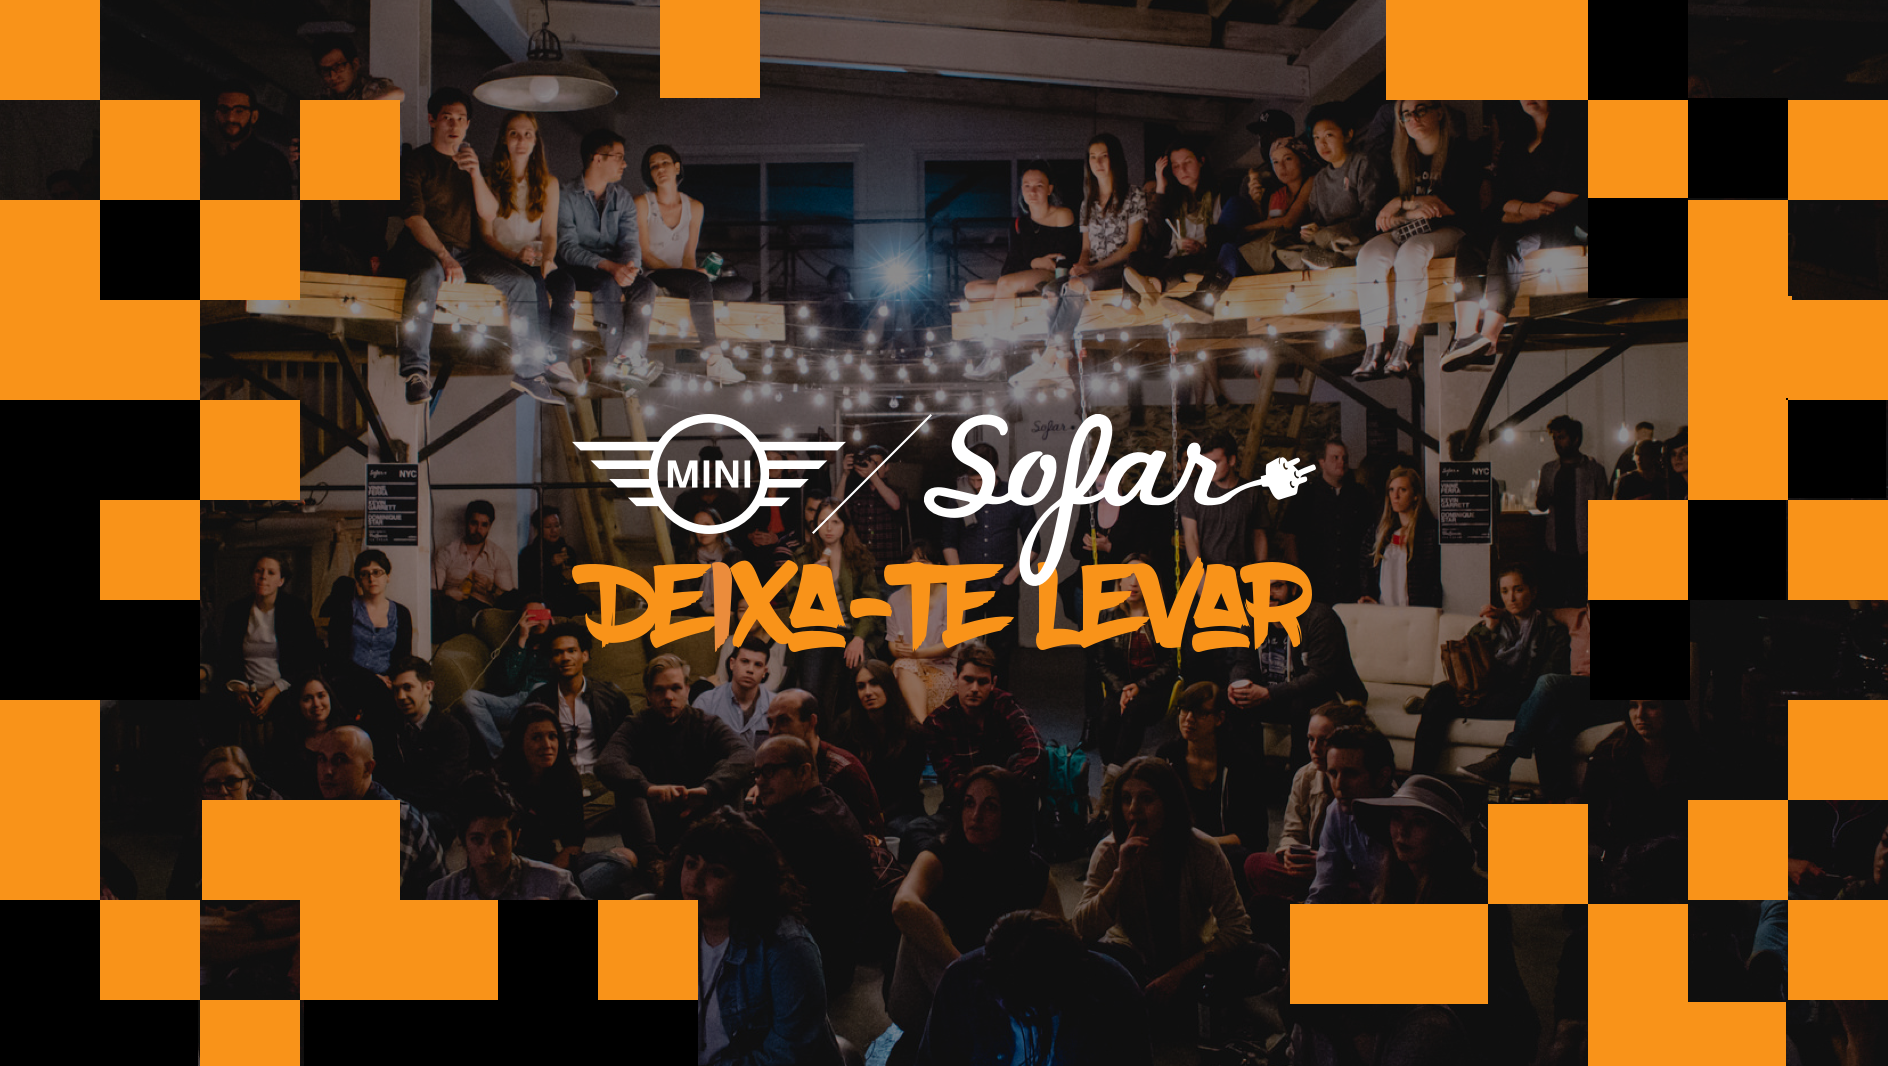 Sofar Sounds regressa a 13 de Outubro